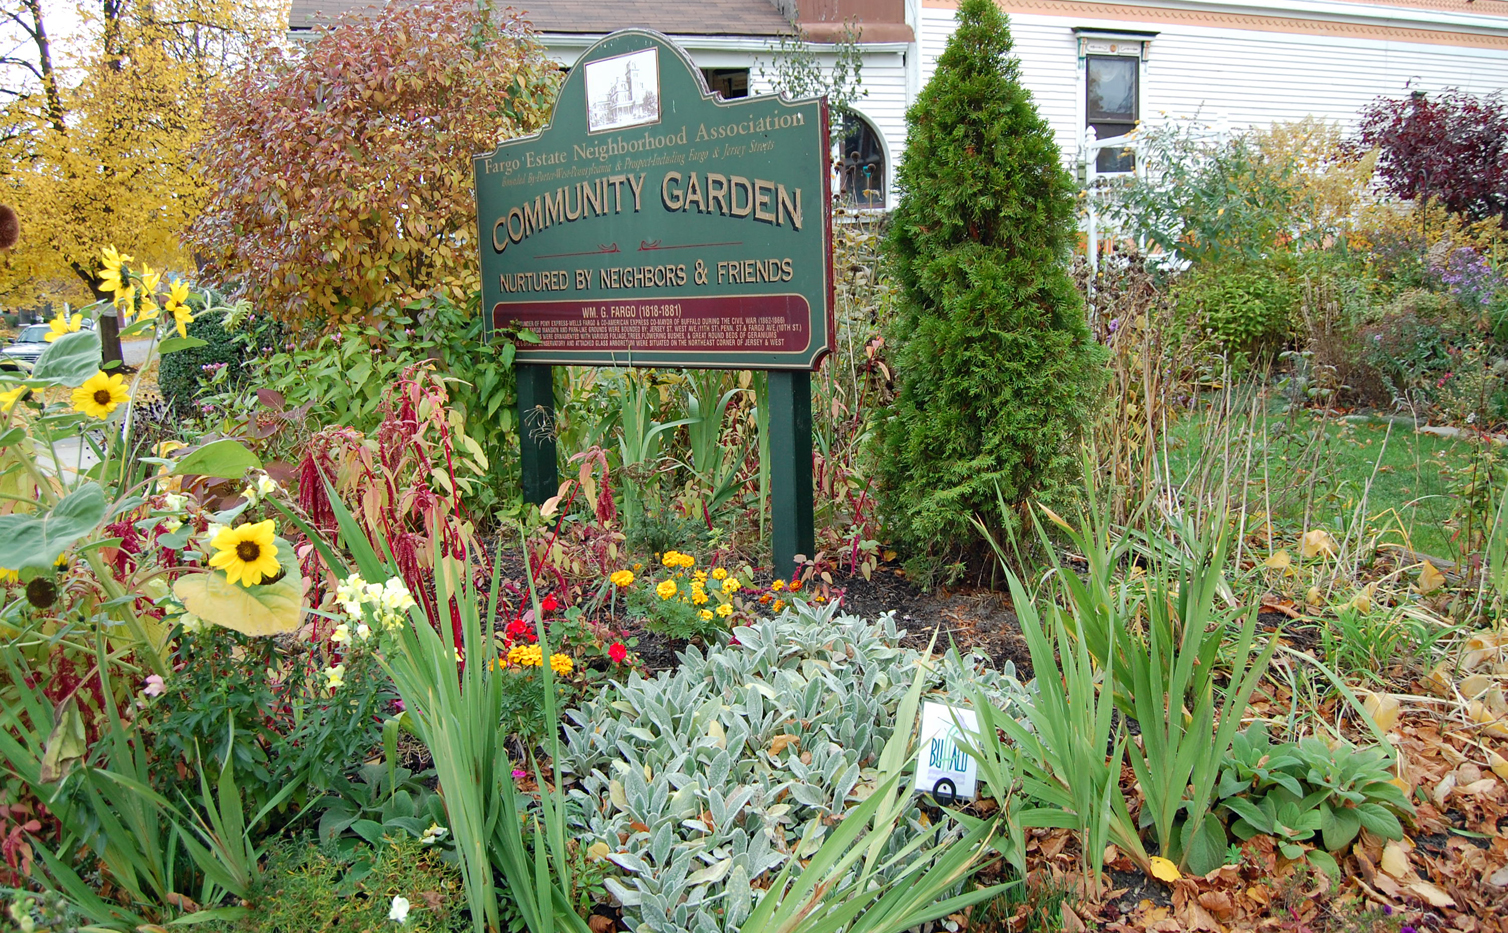 Fargo Estate Neighborhood Community Garden in Buffalo NY